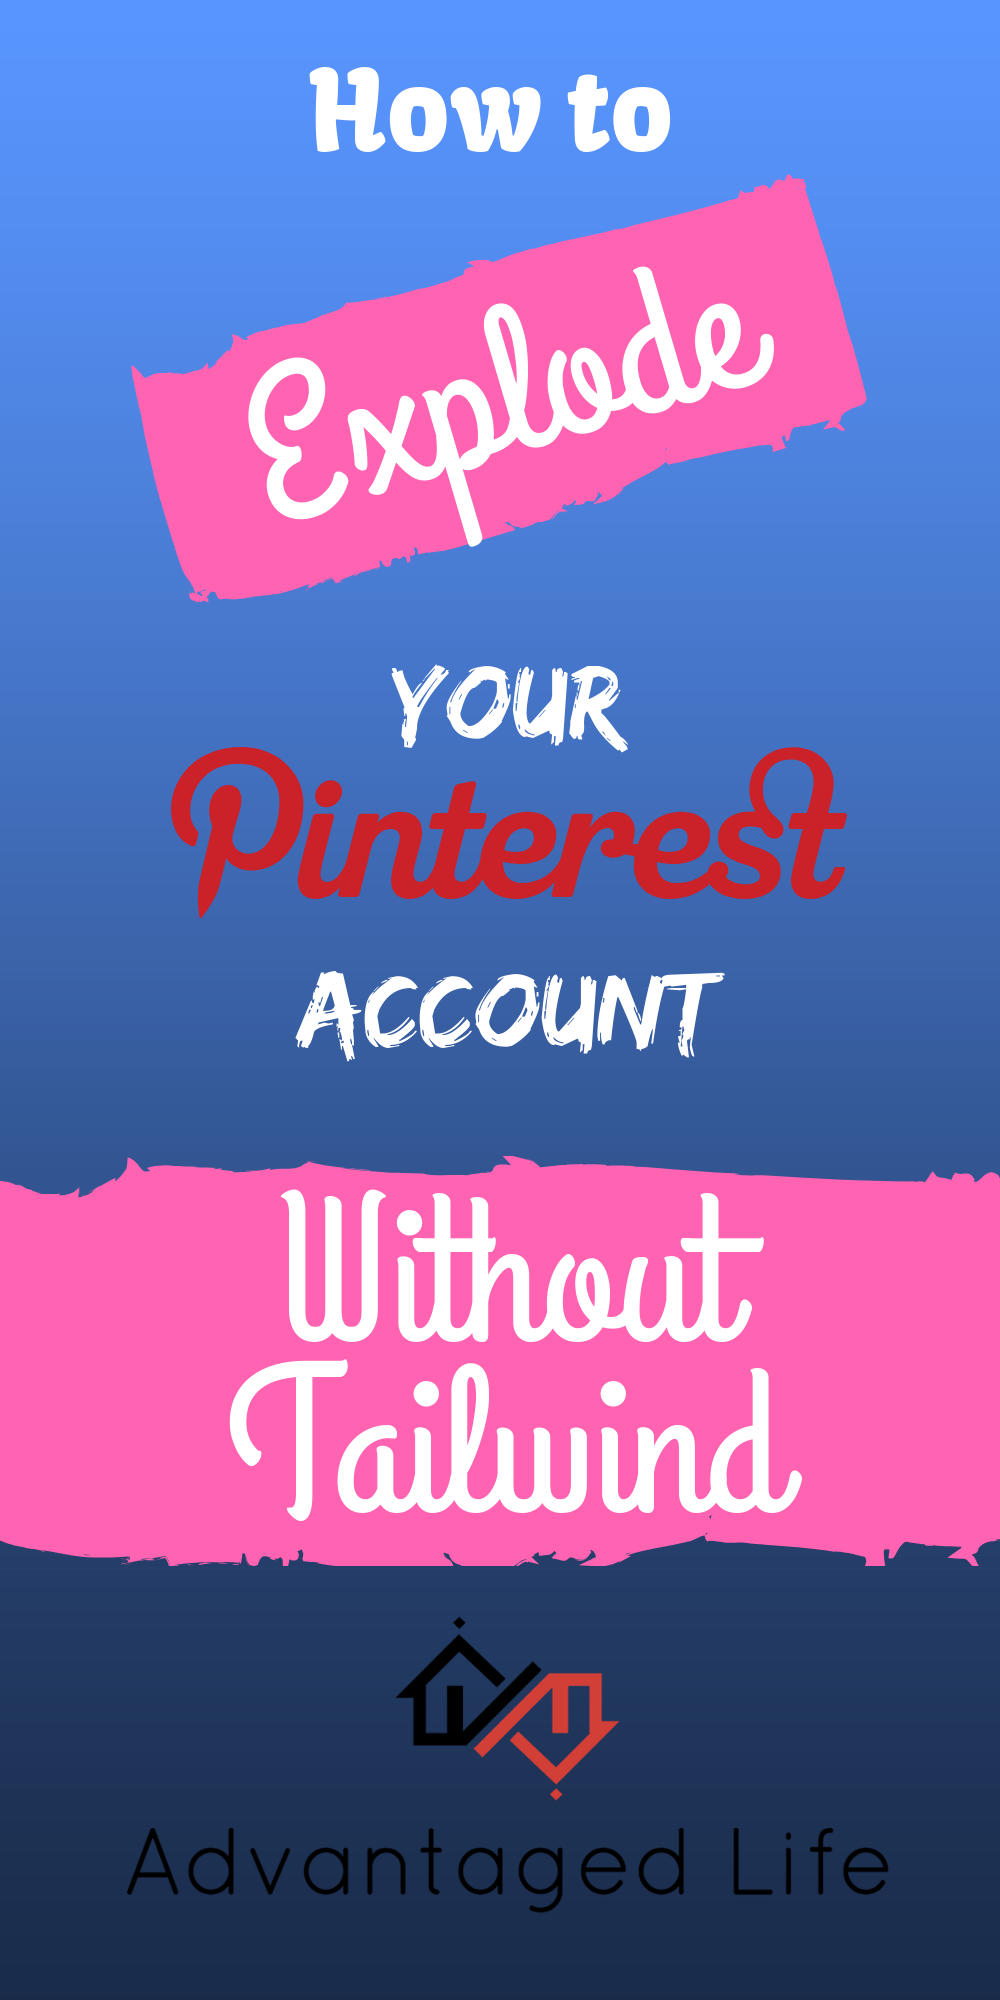 How To Grow Your Pinterest Account (Without Tailwind